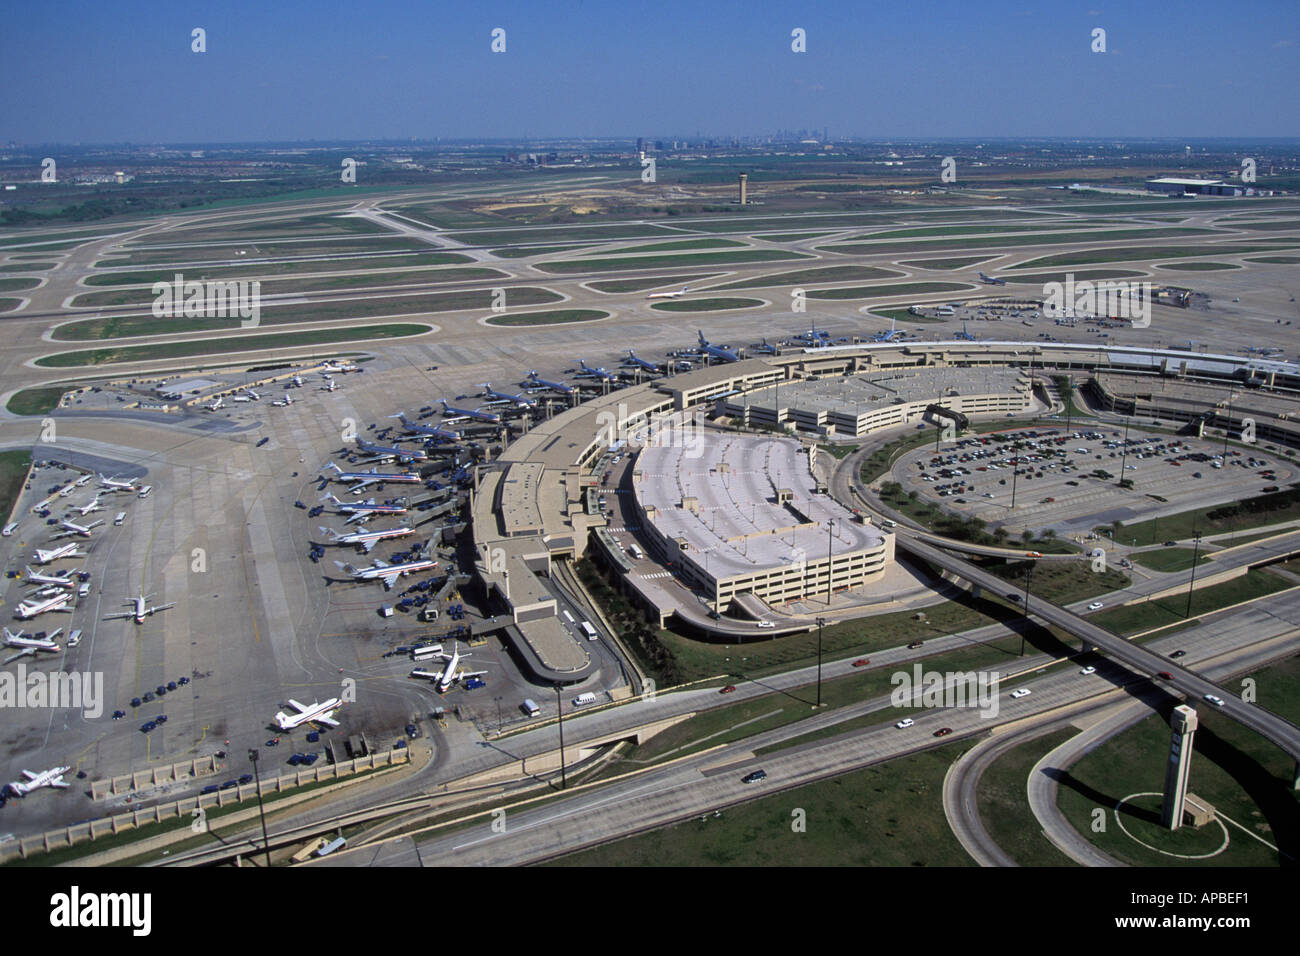 Aerial View Of Dfw Dallas Fort Worth Airport Texas Stock